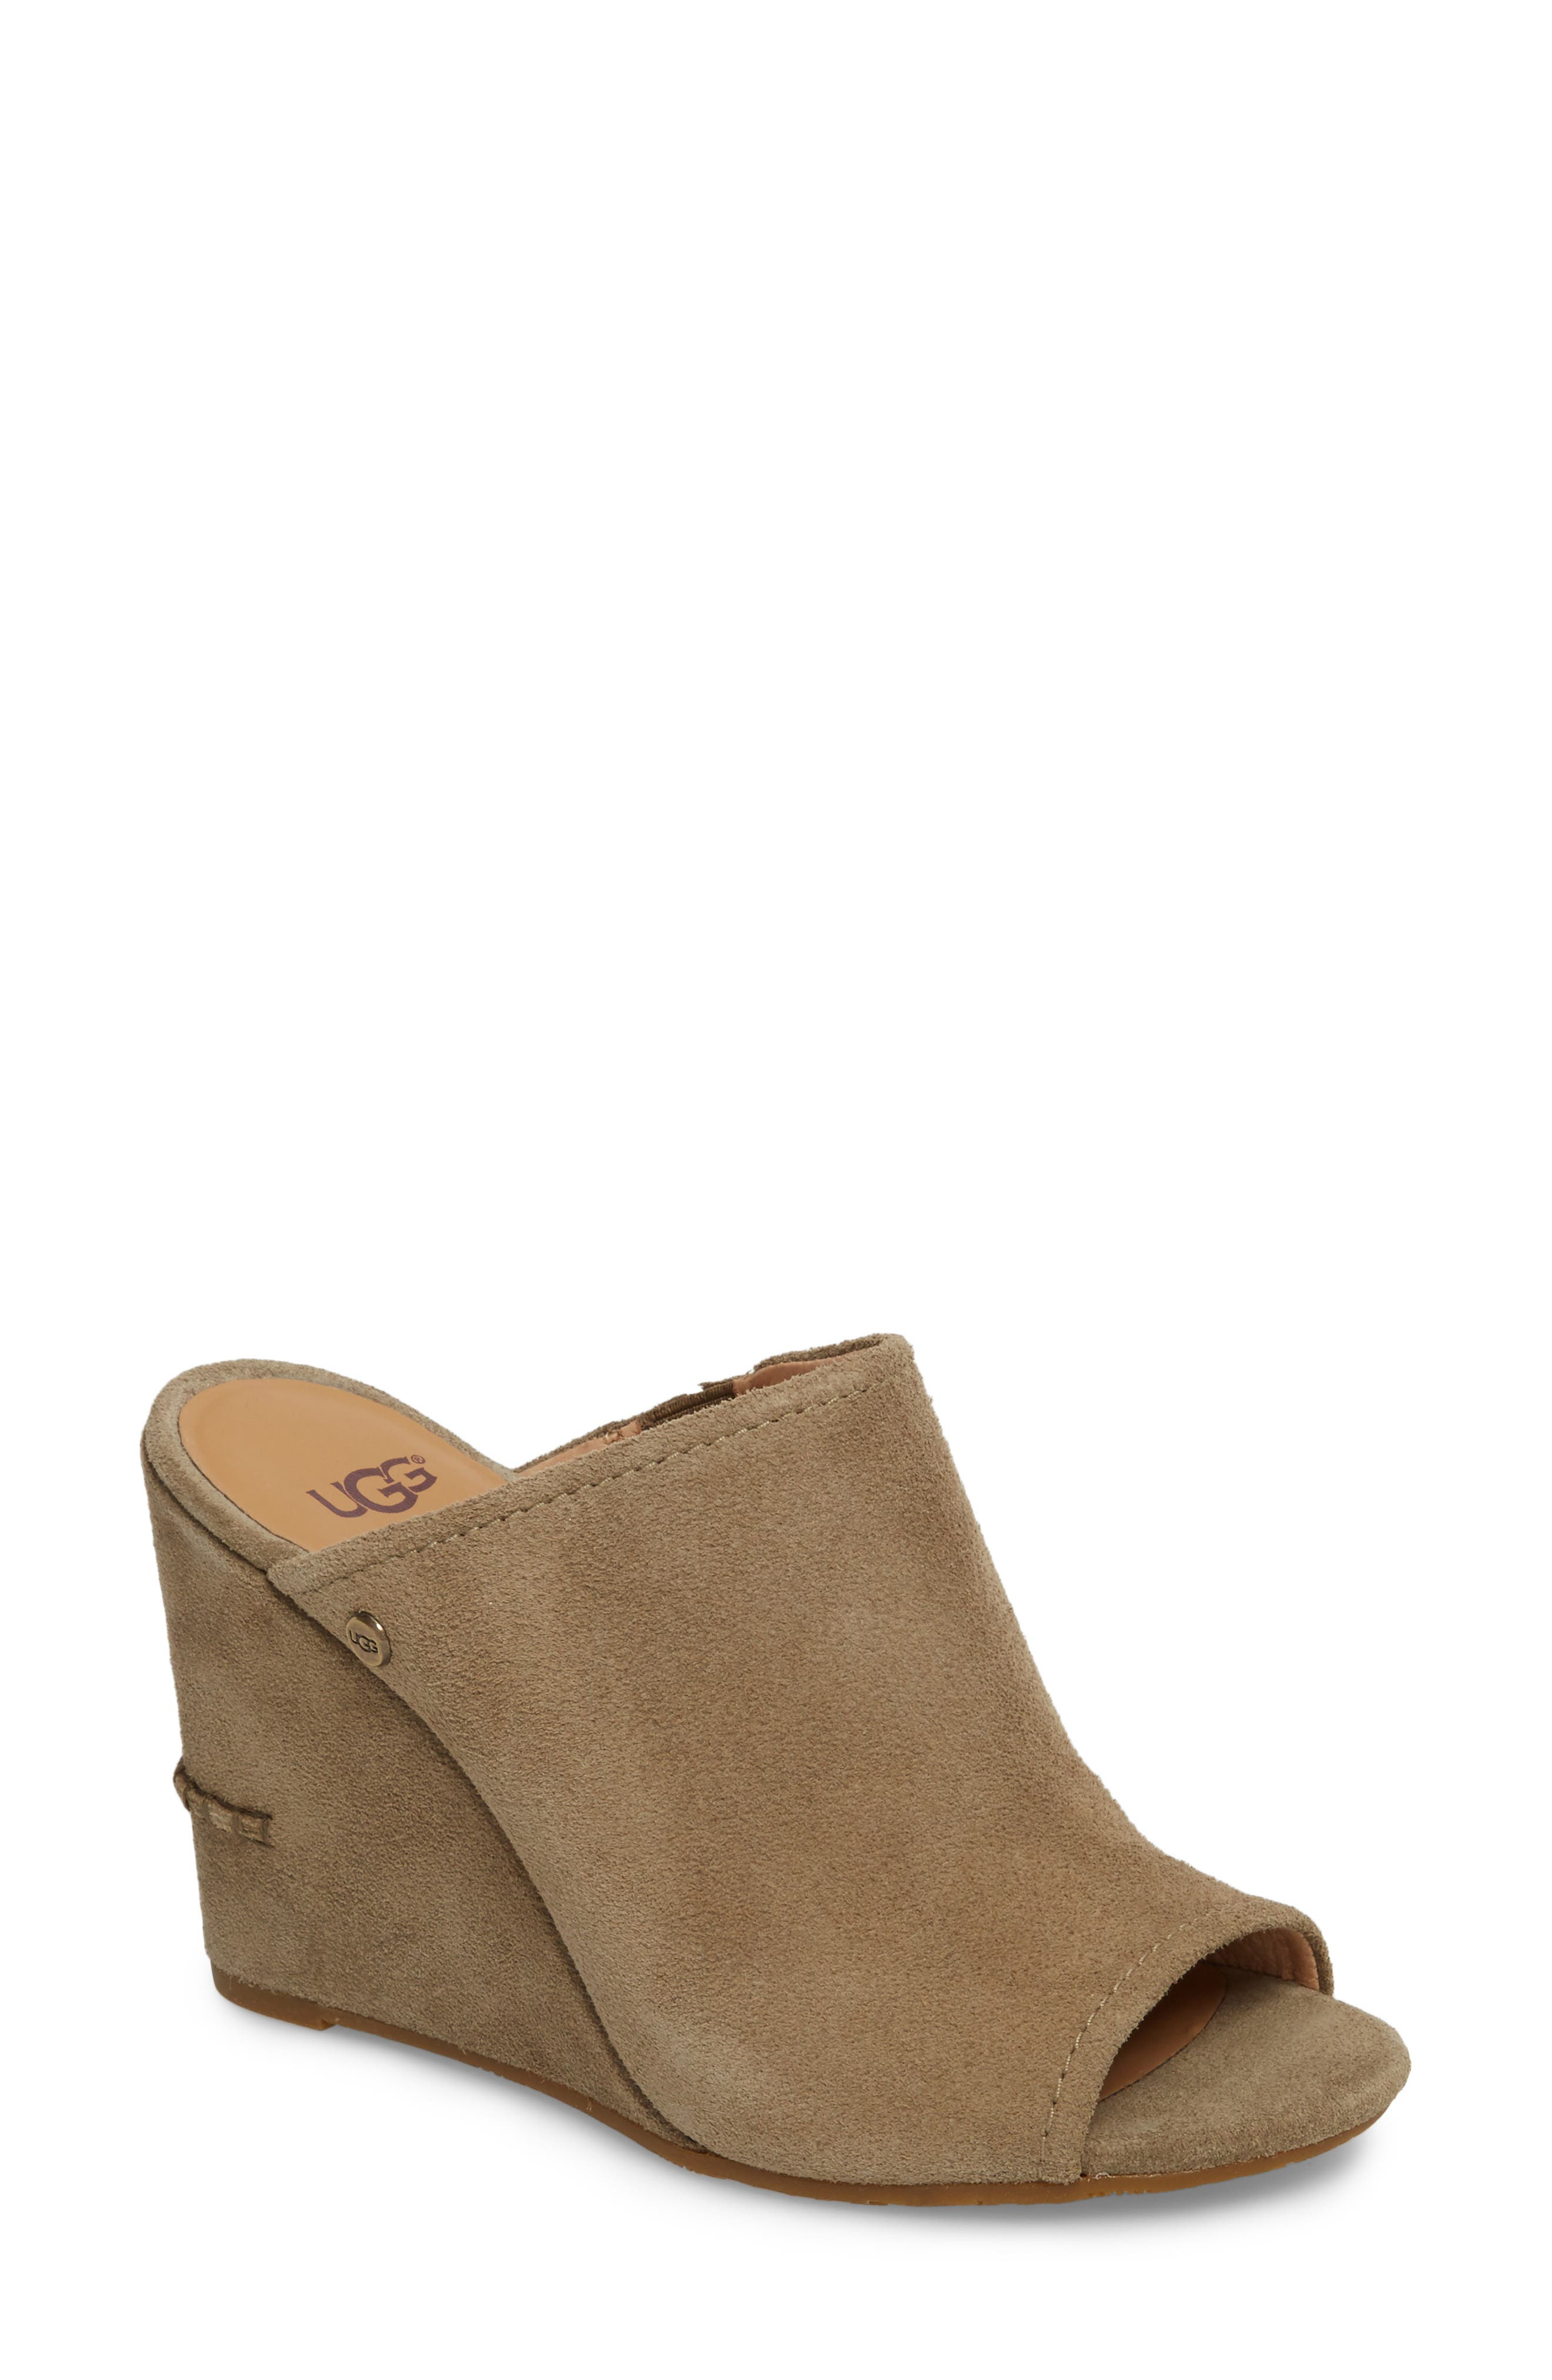 Lively Wedge Slide Sandal,                             Main thumbnail 1, color,                             ANTELOPE SUEDE